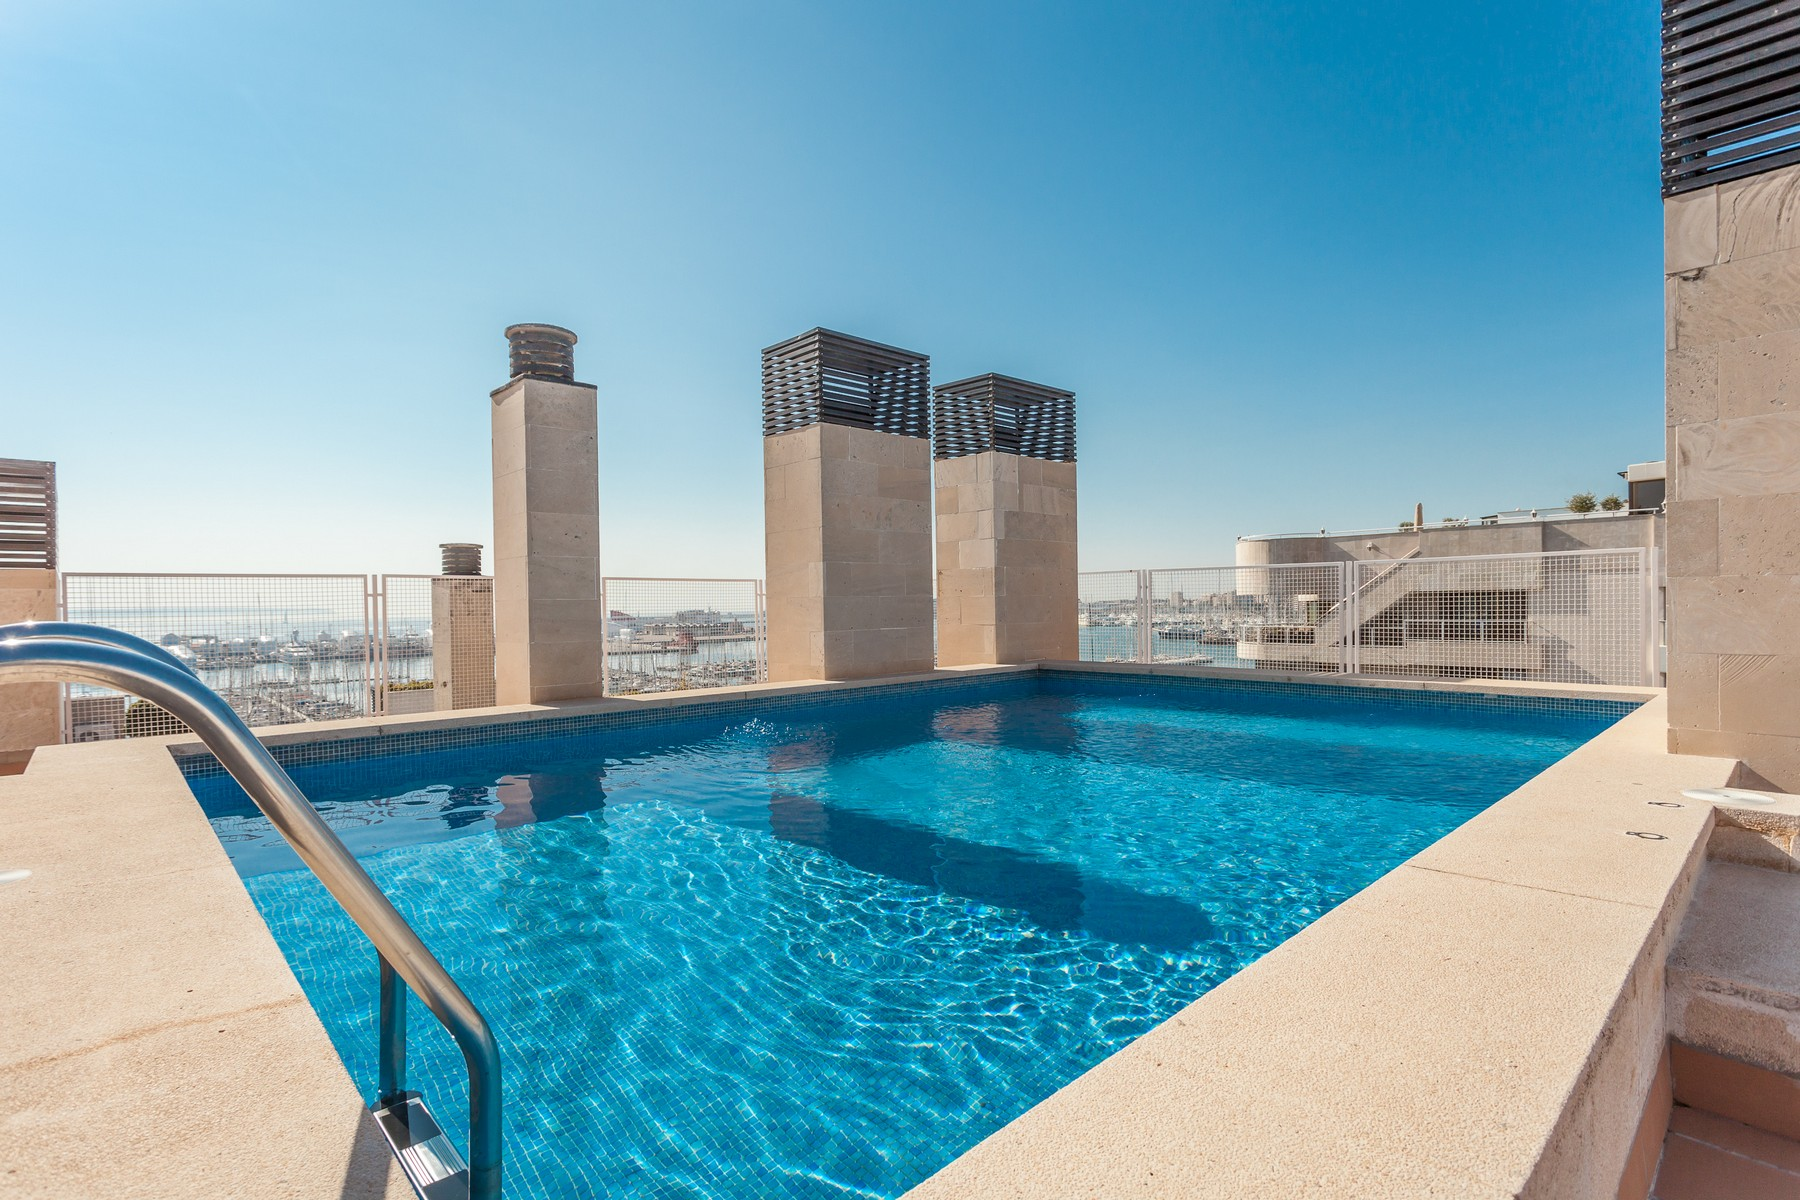 Maison unifamiliale pour l Vente à Apartment in Paseo Marítimo with views Palma, Majorque 07001 Espagne